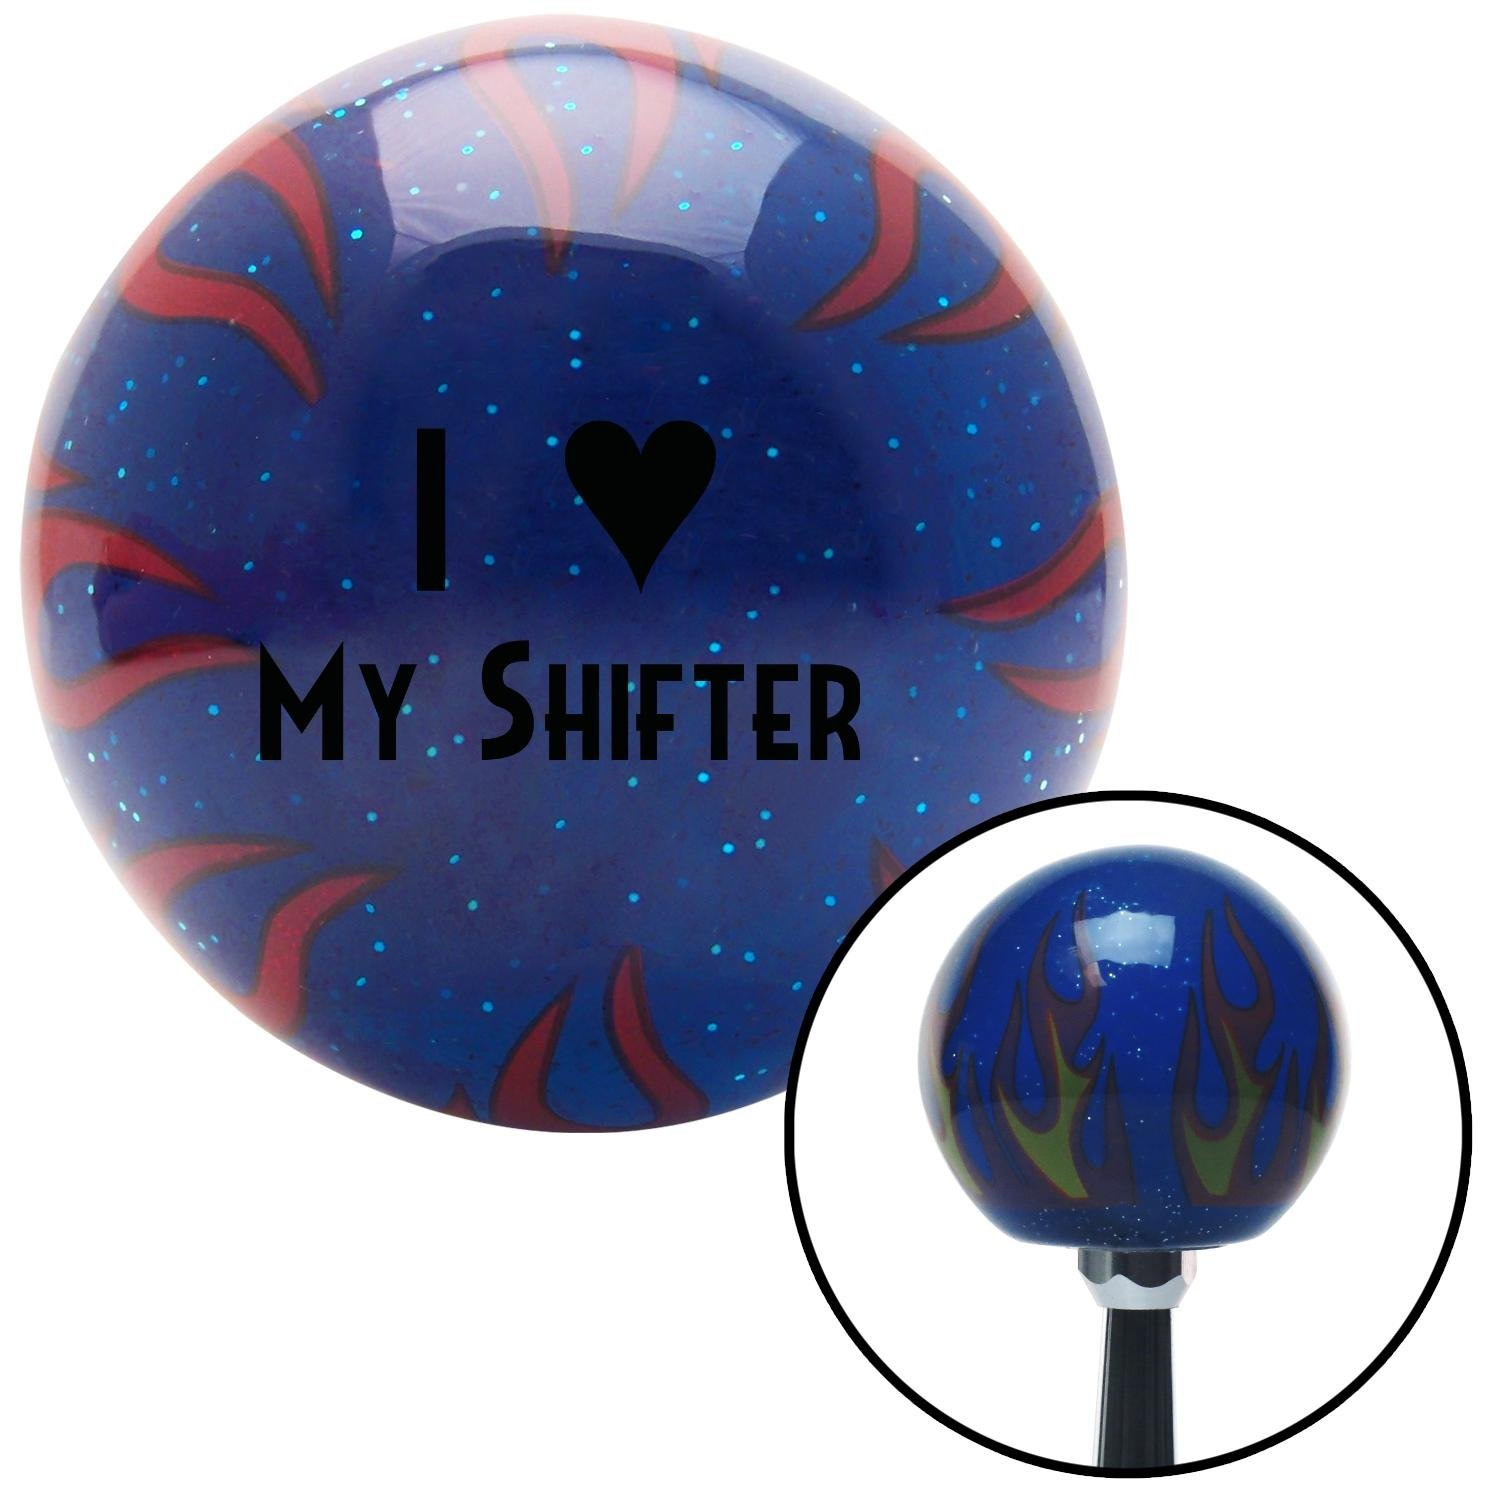 American Shifter 245699 Blue Flame Metal Flake Shift Knob with M16 x 1.5 Insert Black I 3 My Shifter